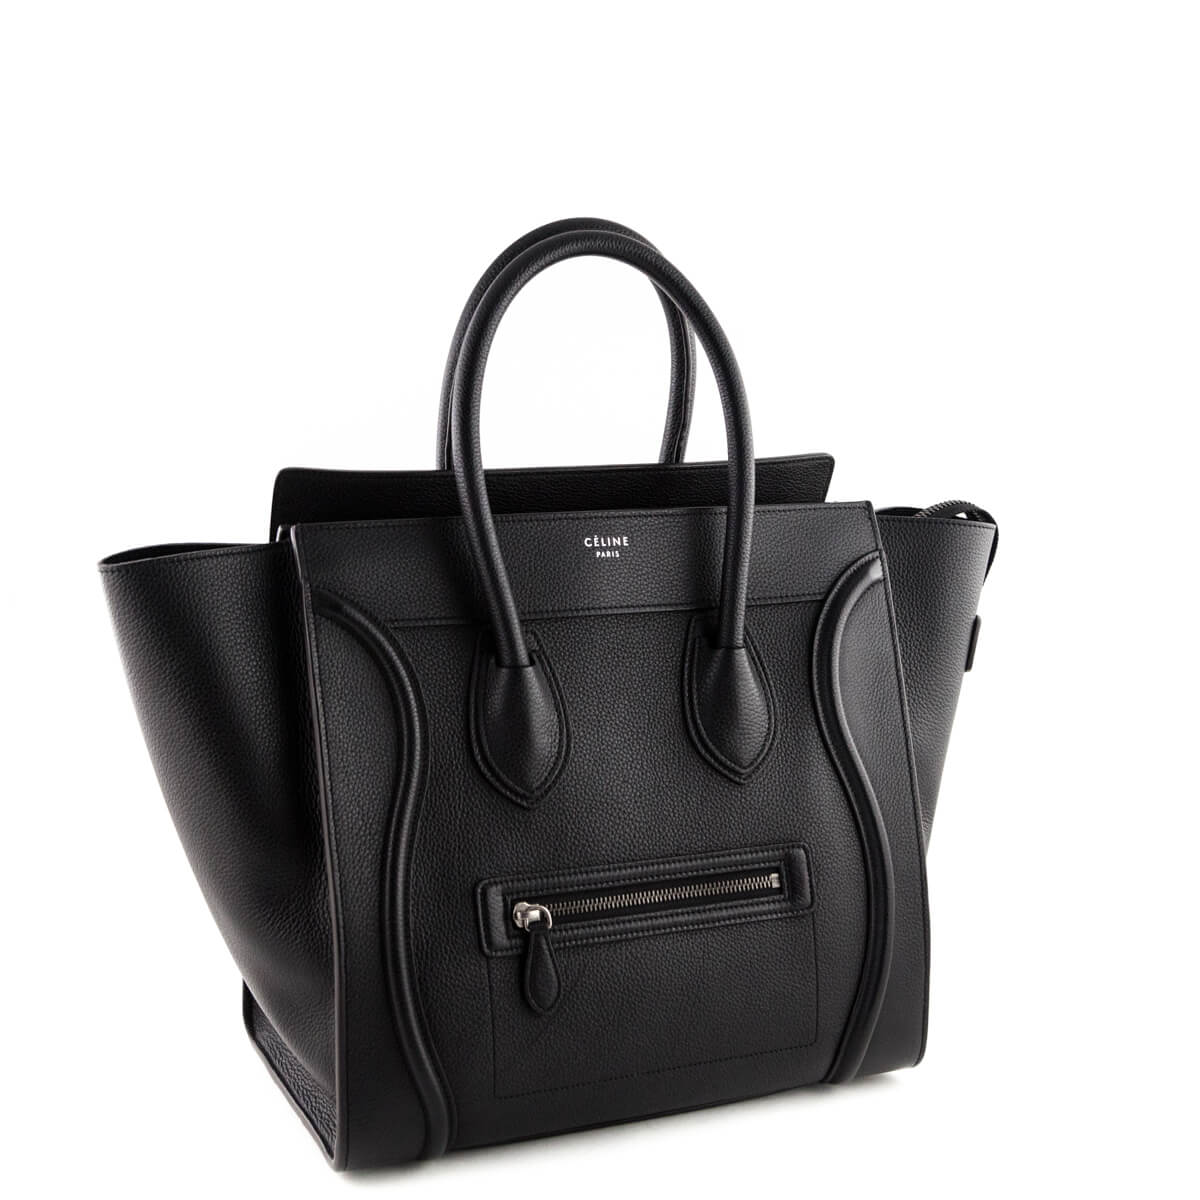 6a560d34a683 ... Celine Black Calfskin Mini Luggage Tote - LOVE that BAG - Preowned  Authentic Designer Handbags ...